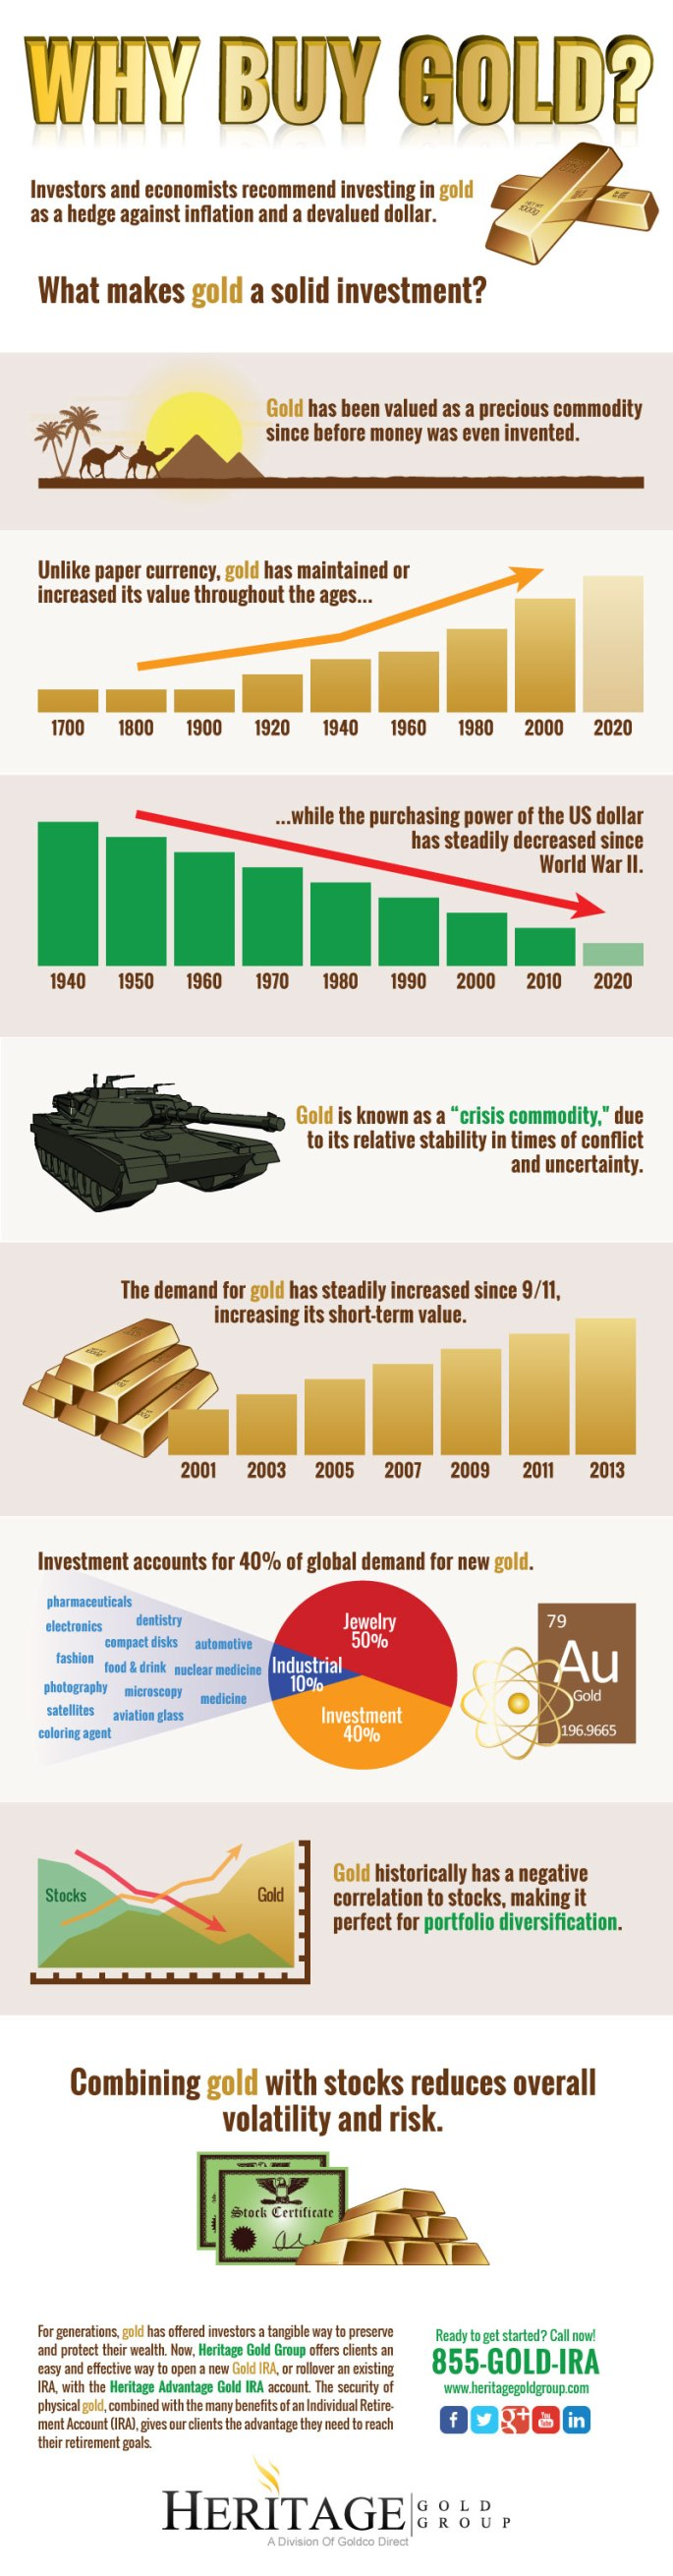 why-buy-gold_5266a9219fcbc